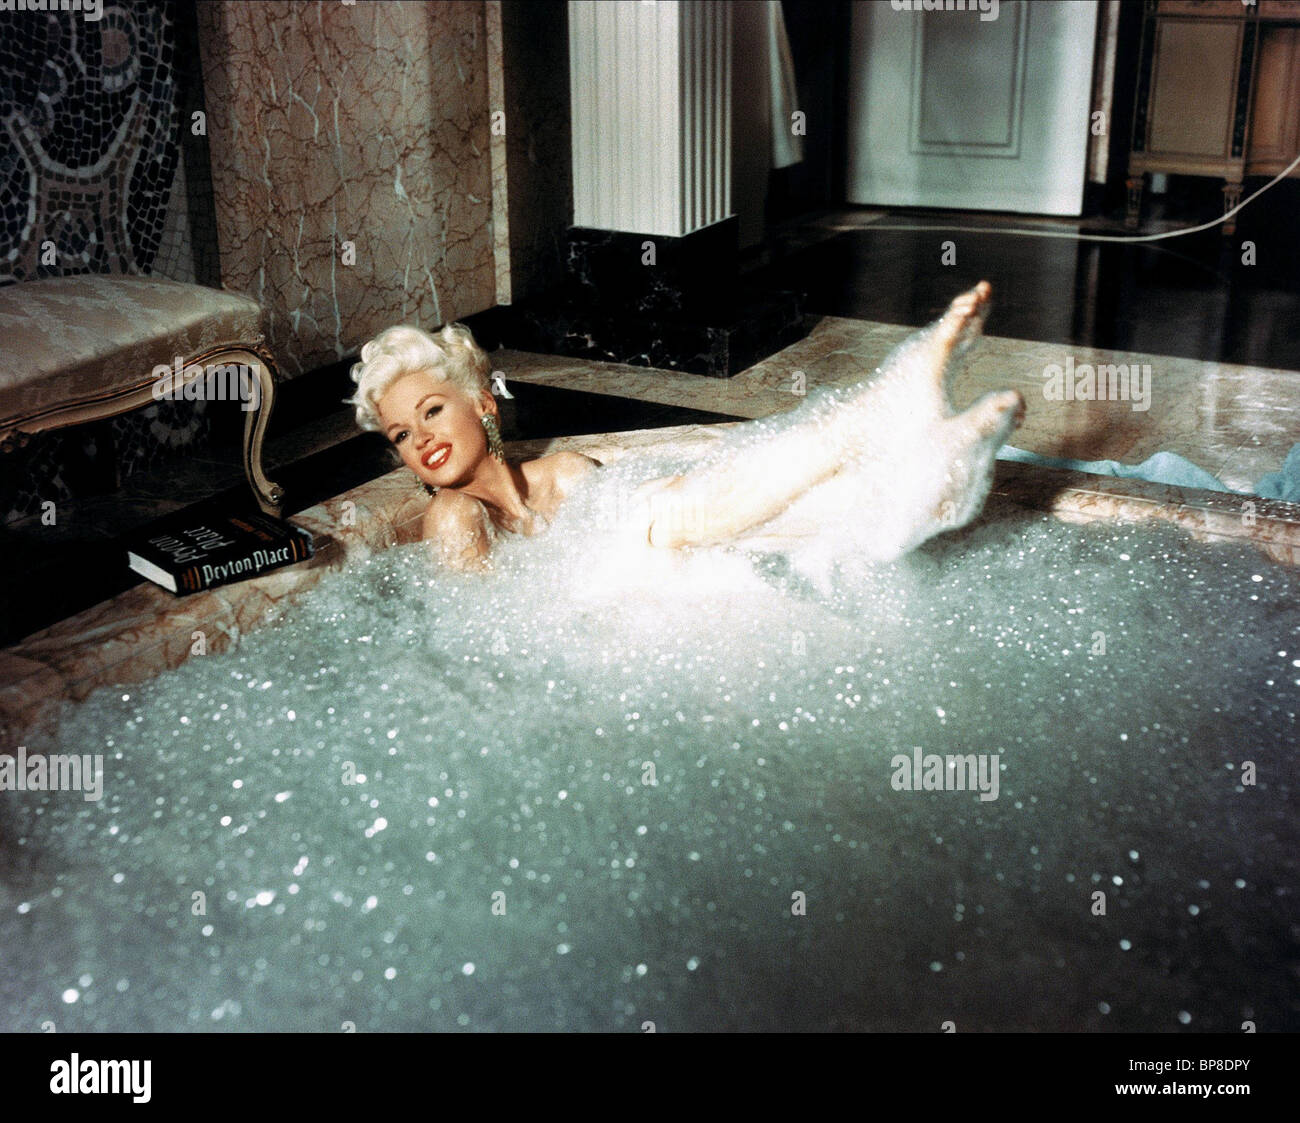 Jayne mansfield a guide for the married man 1967